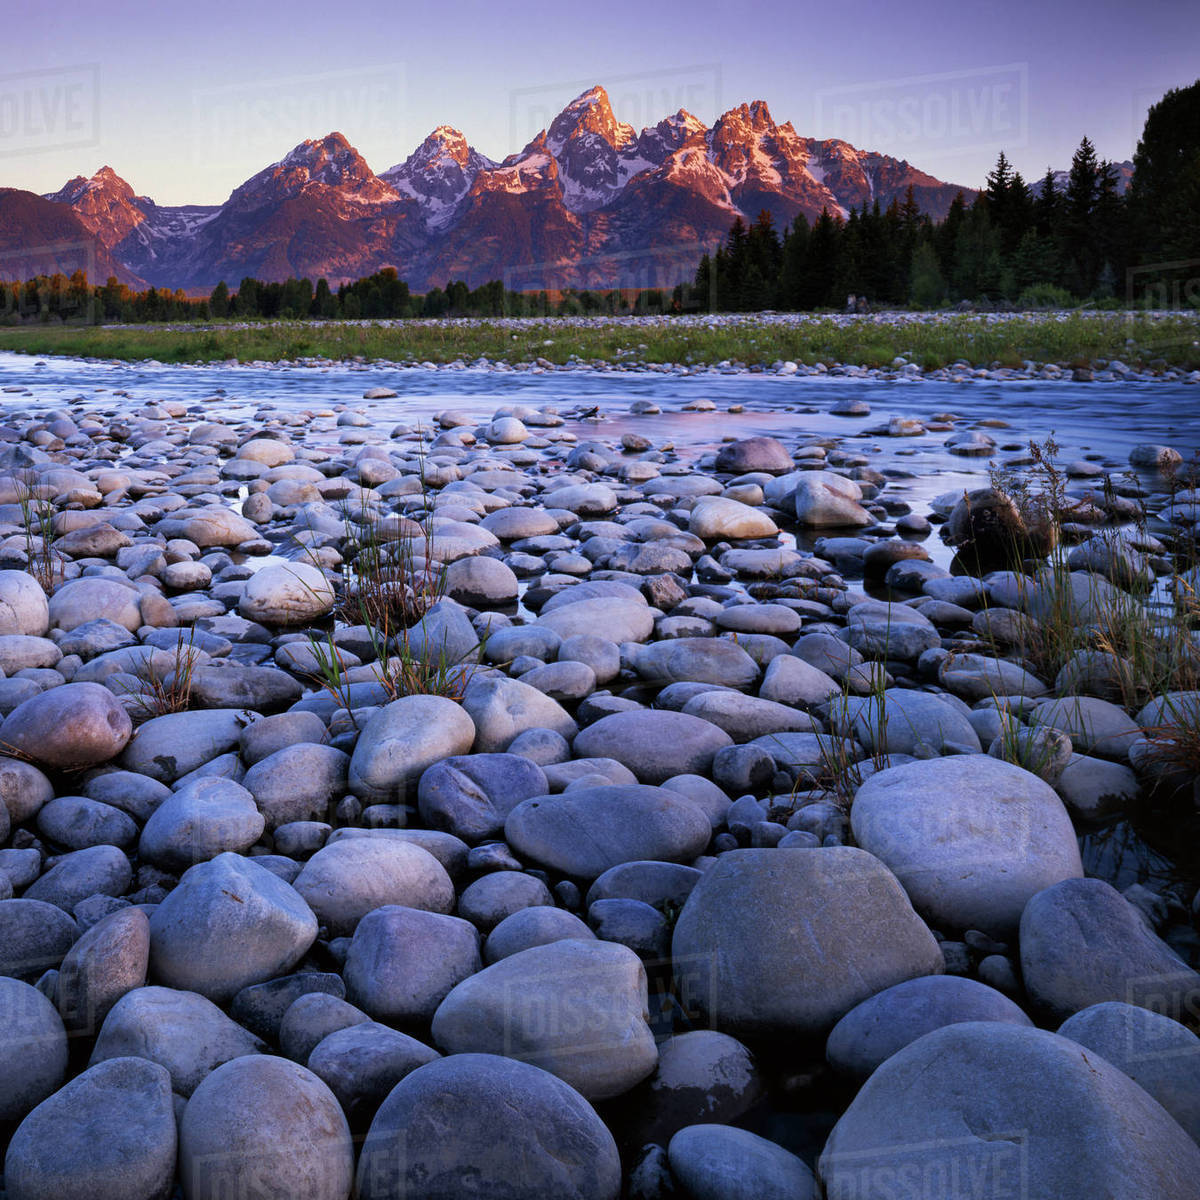 USA, Wyoming, Teton National Park, the Snake River, Teton Range Rights-managed stock photo